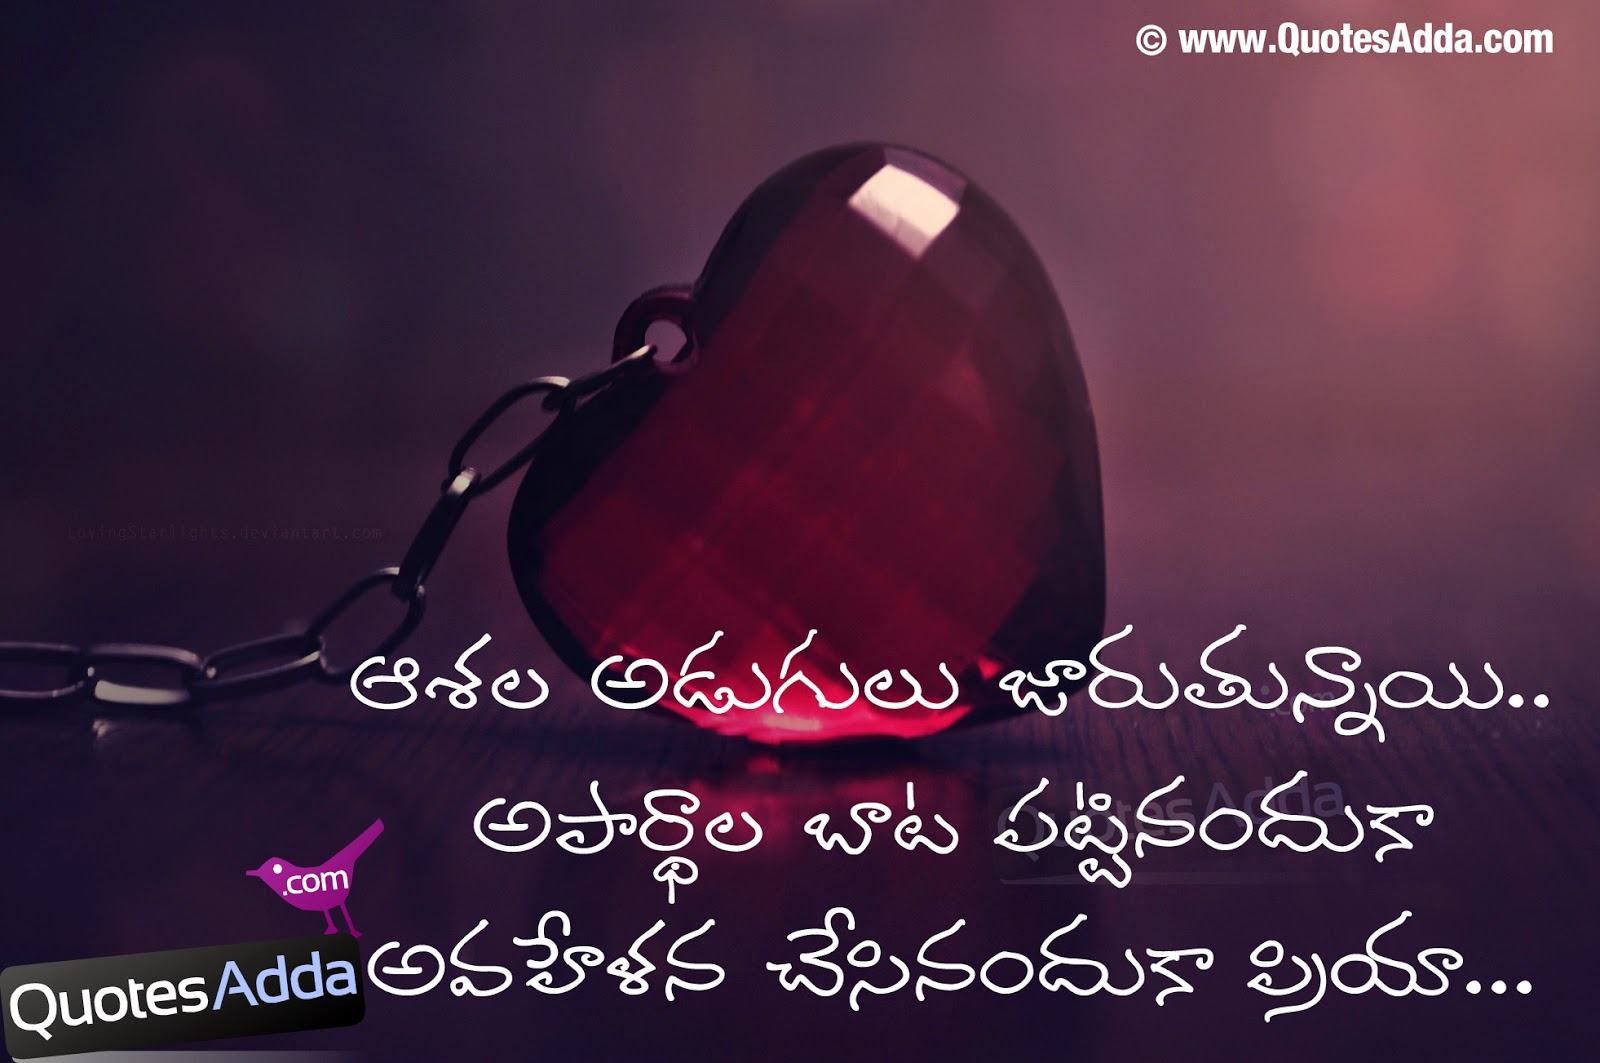 telugu quotes wallpapers nice funny telugu kids quotes Quotes